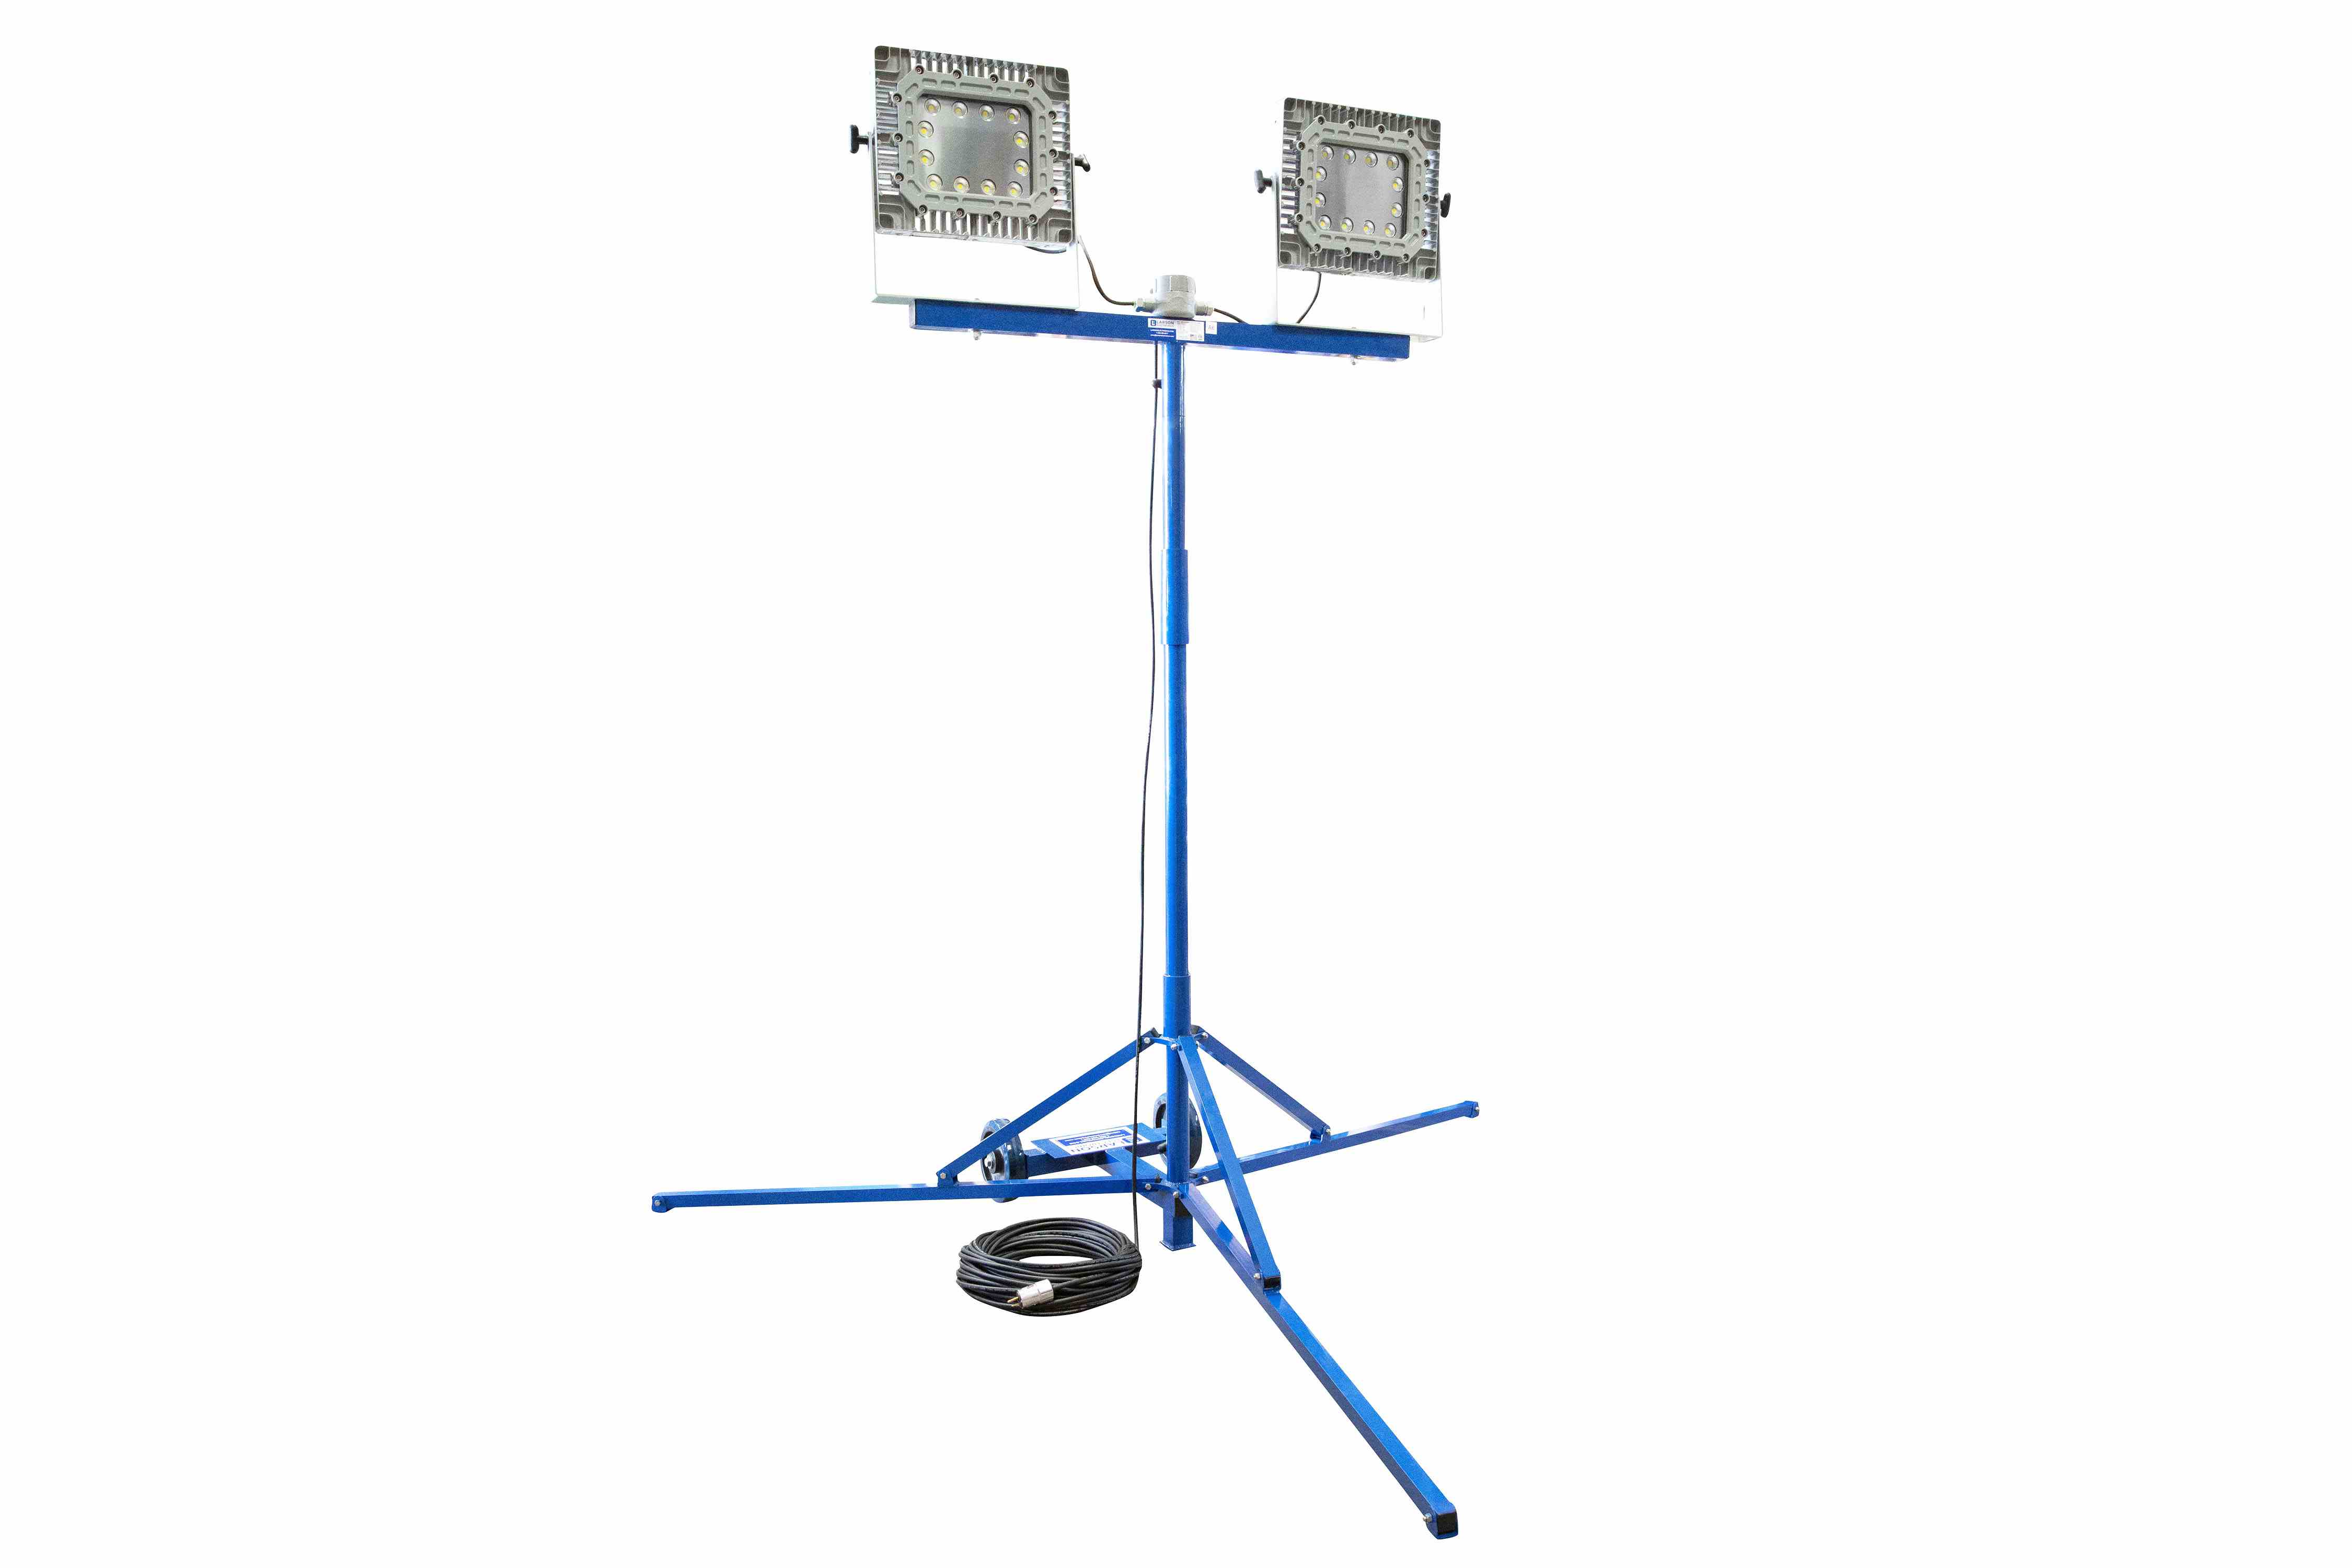 300w Explosion Proof Led Light Tower